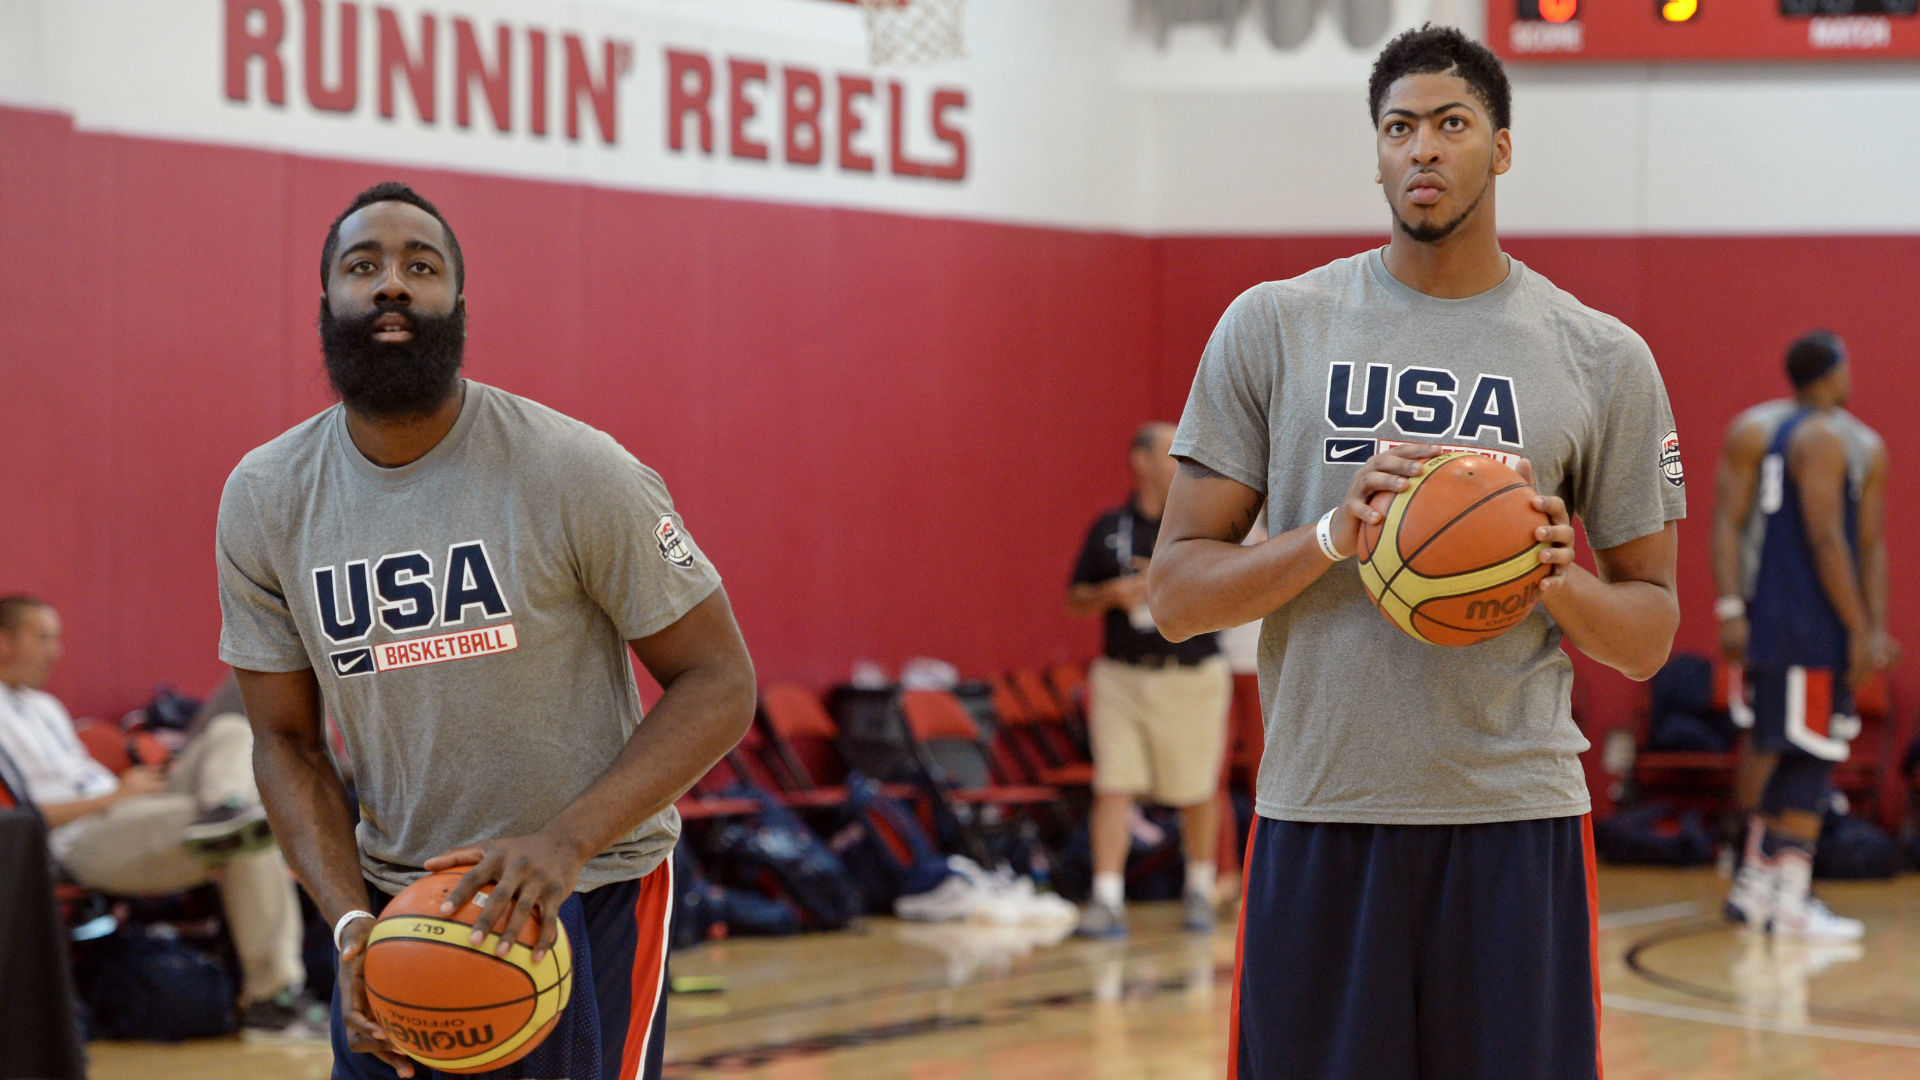 FIBA World Cup 2019: James Harden, Anthony Davis among names withdrawn from Team USA